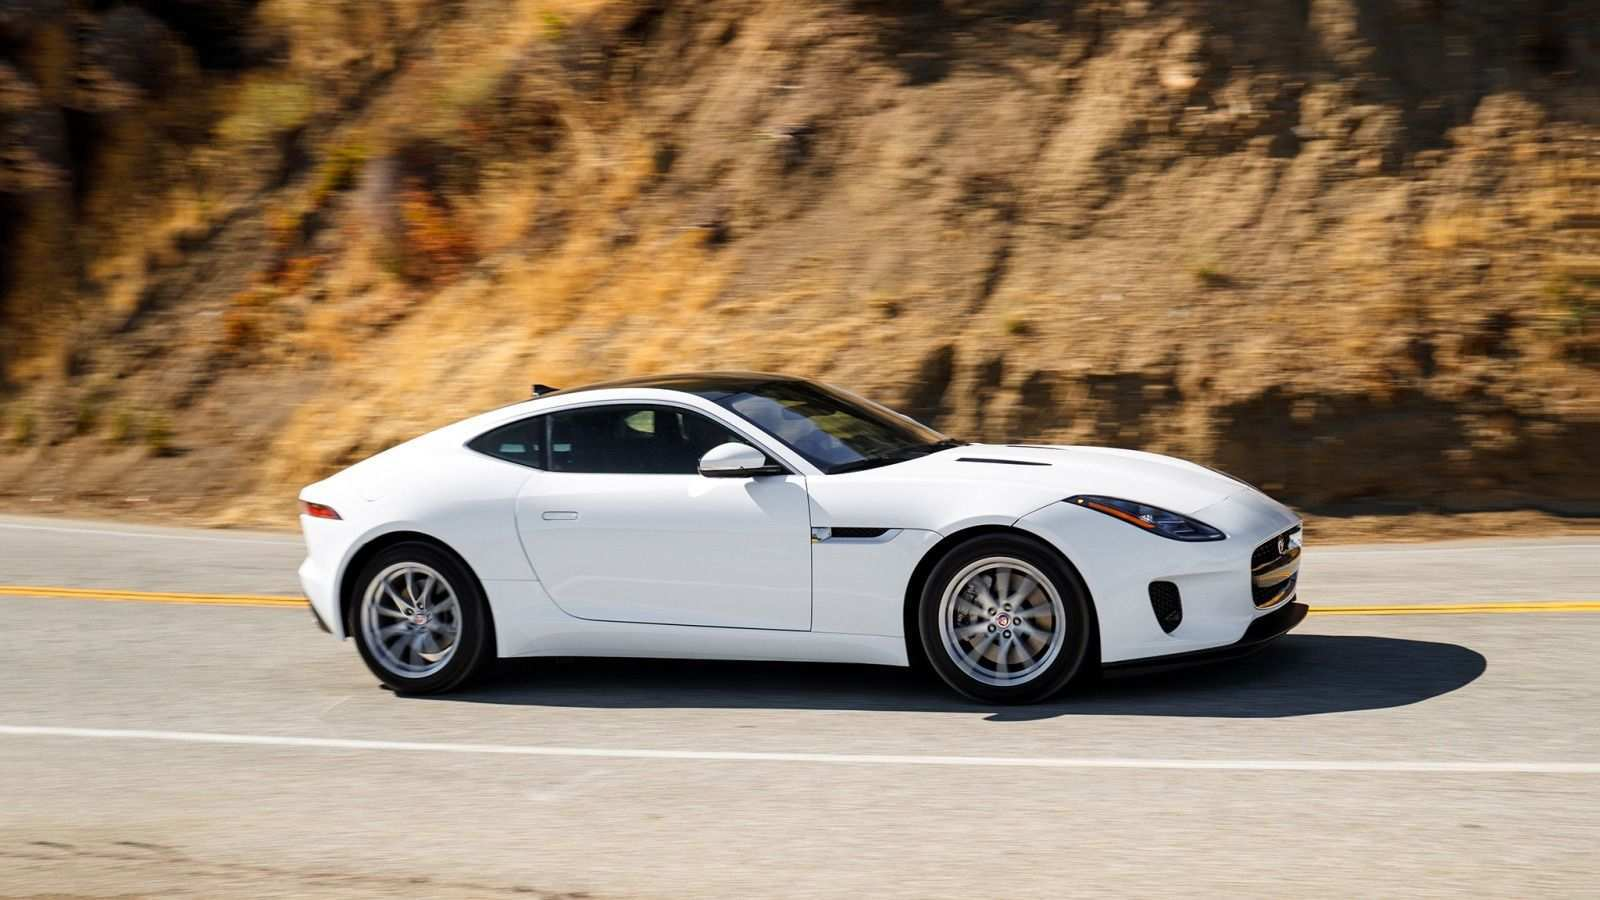 69 The Best 2019 Jaguar F Type Release Date Review And Release Date Prices by Best 2019 Jaguar F Type Release Date Review And Release Date